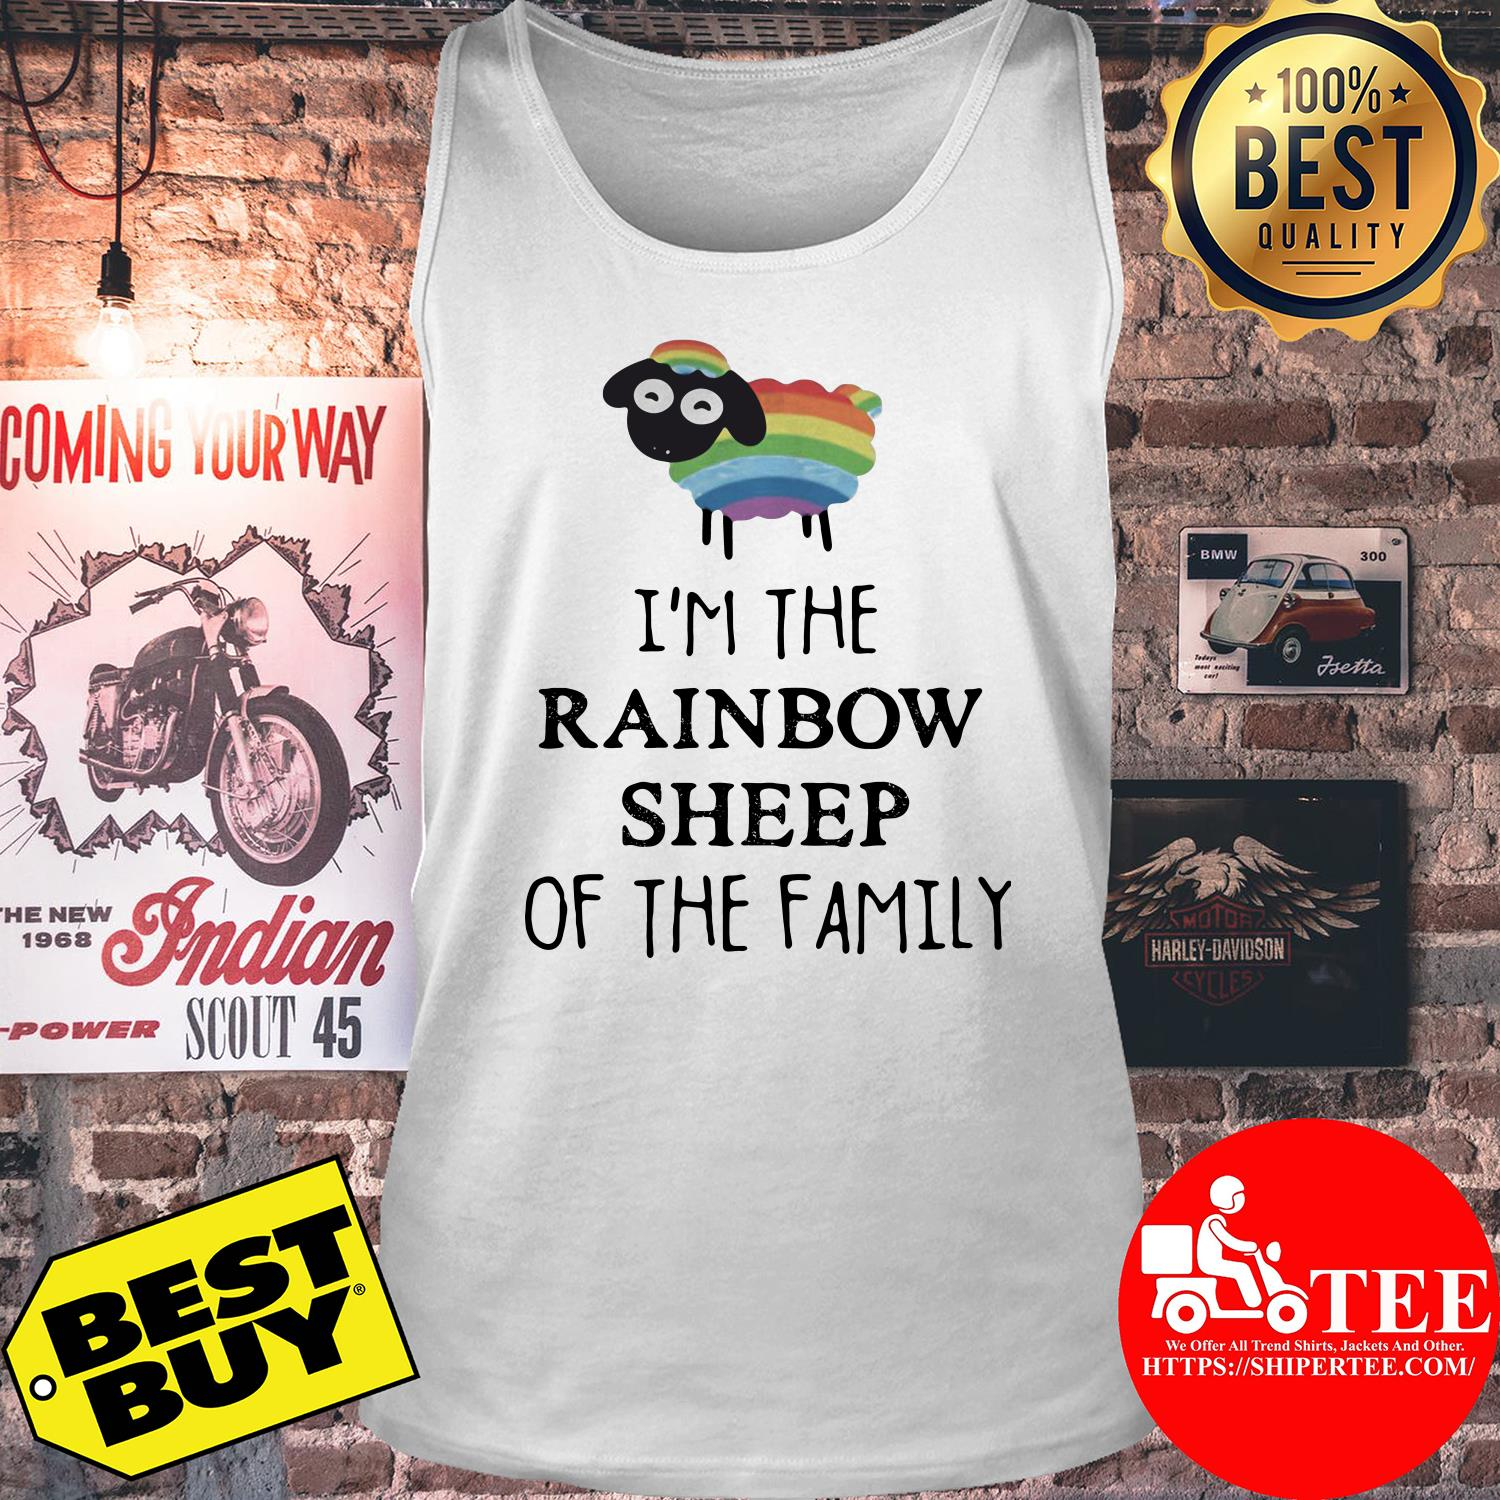 I'm The Rainbow Sheep Of The Family tank top